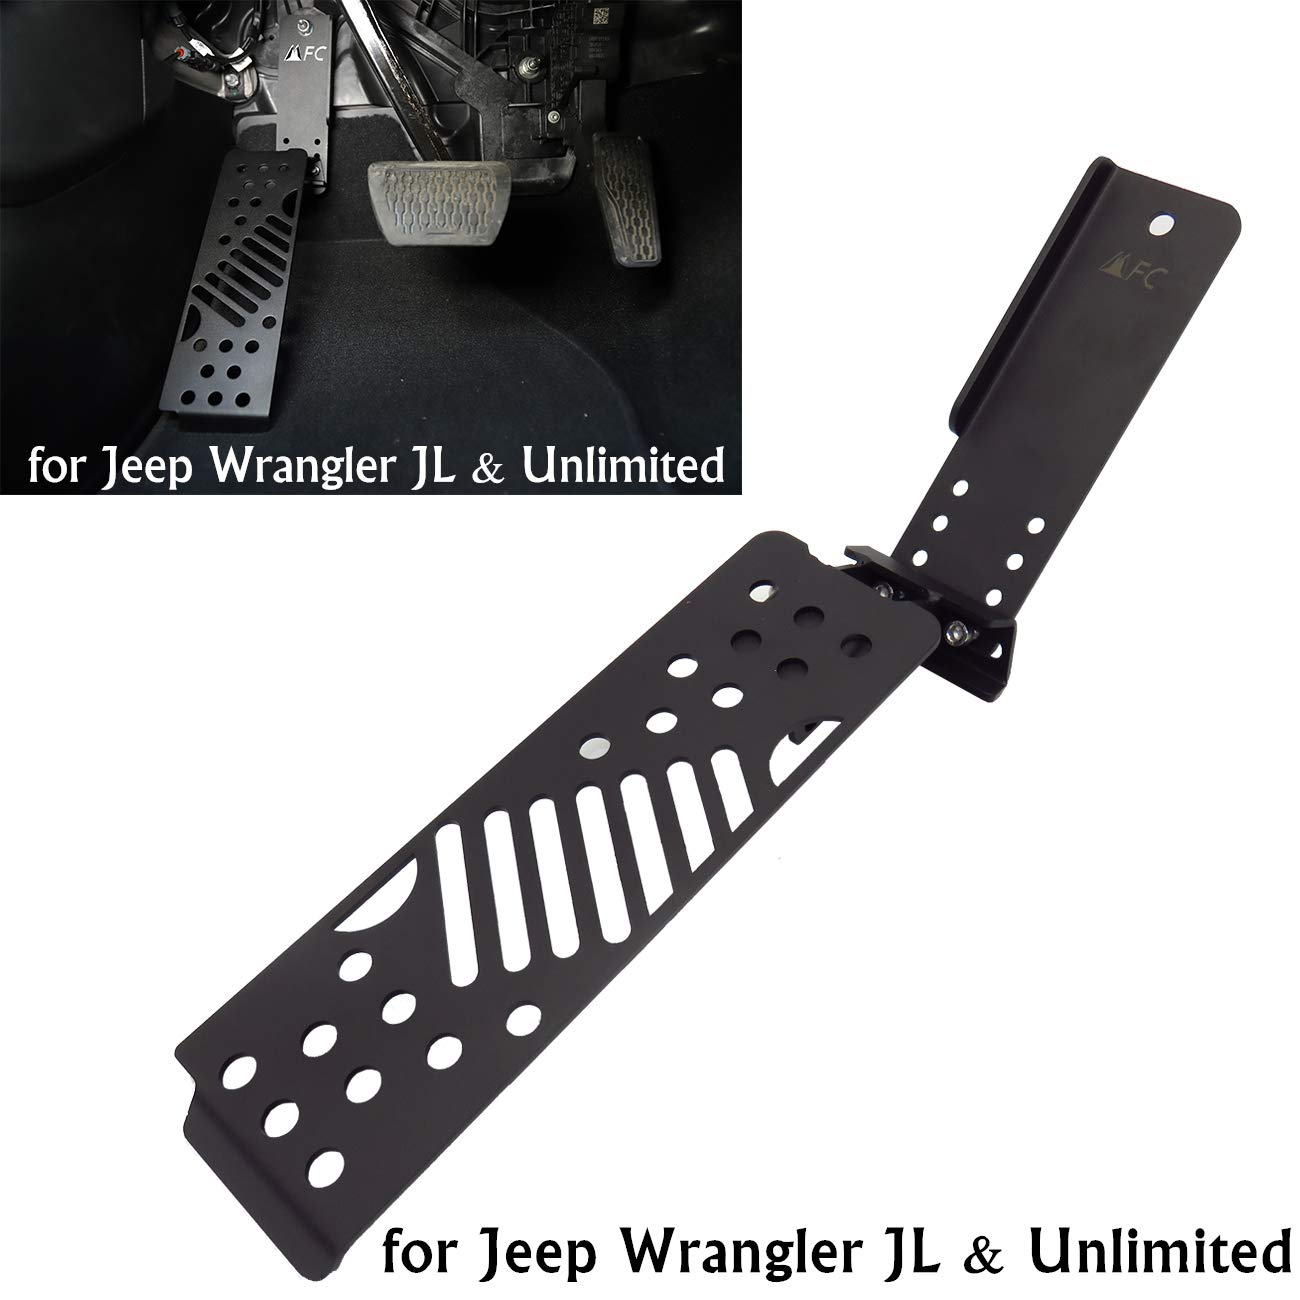 Left Foot Rest Pedal Foot Pegs Kick Panel for Jeep Wrangler JL/& Unlimited 2018-2019